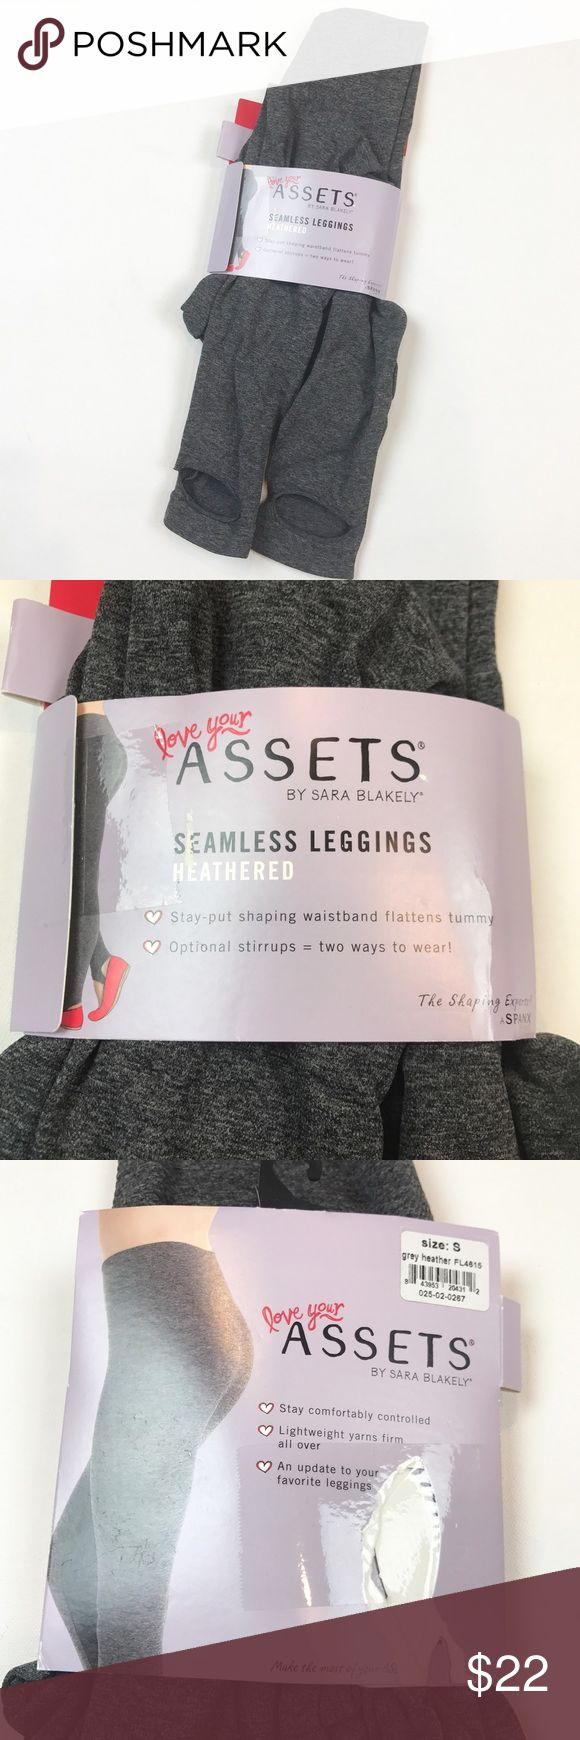 Assets NEW heathered gray seamless leggings size S Assets NEW heathered gray seamless leggings size S. Optional stirrups. Stay put, waistband flattens tummy. Great and comfortable gray leggings for all those tunic tops! ASSETS by Sara Blakely Pants Leggings